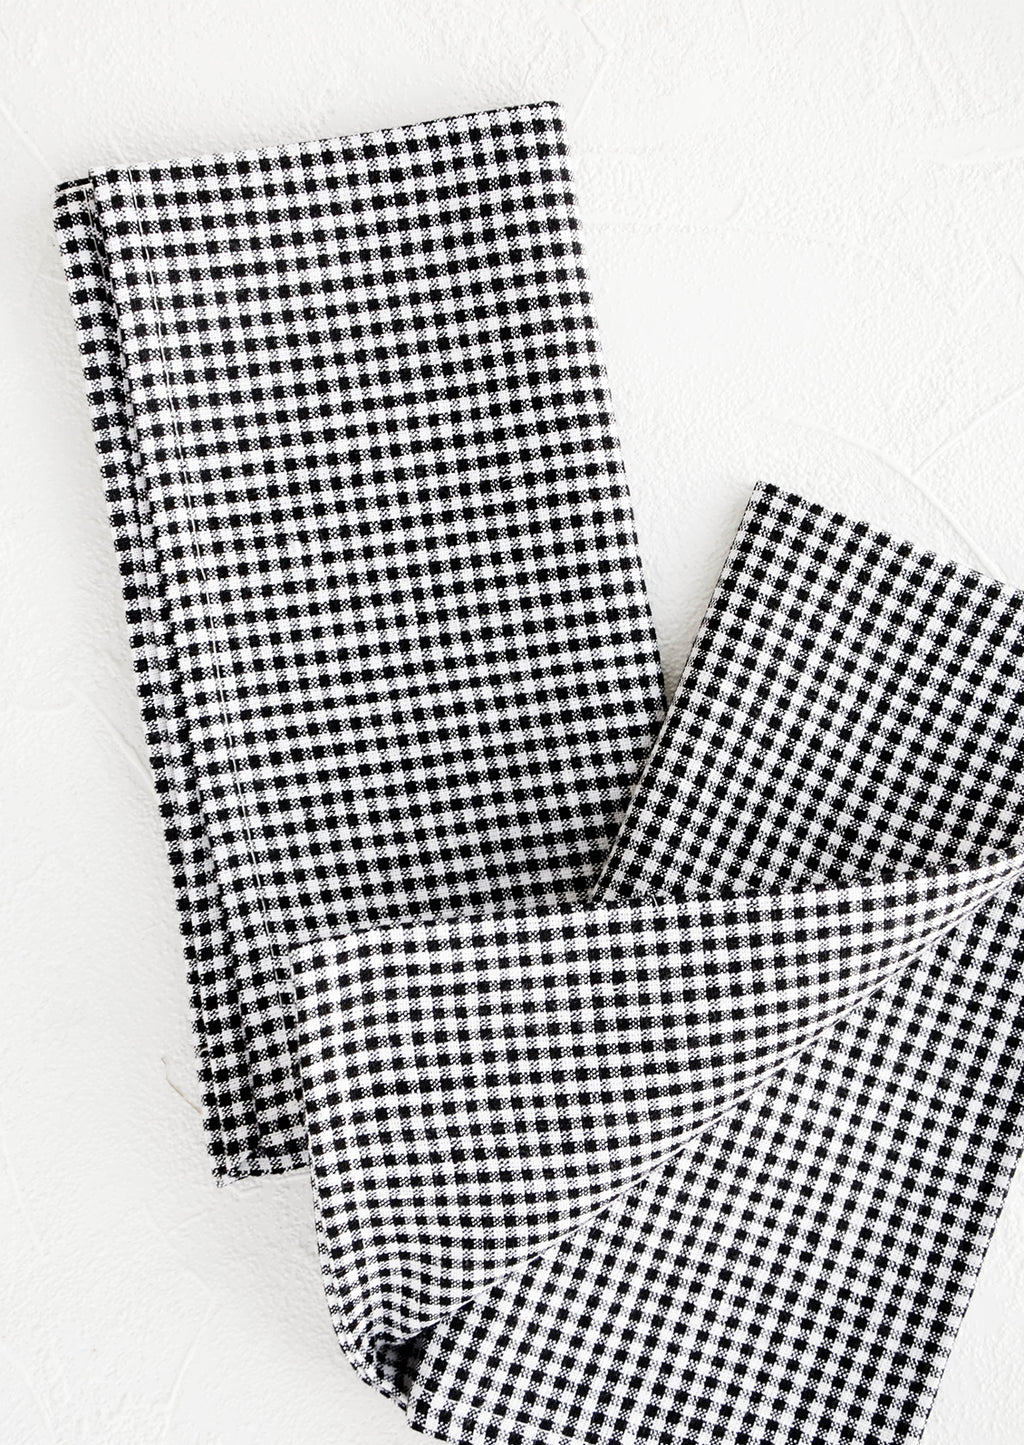 3: Pair of fabric dinner napkins in black and white gingham pattern